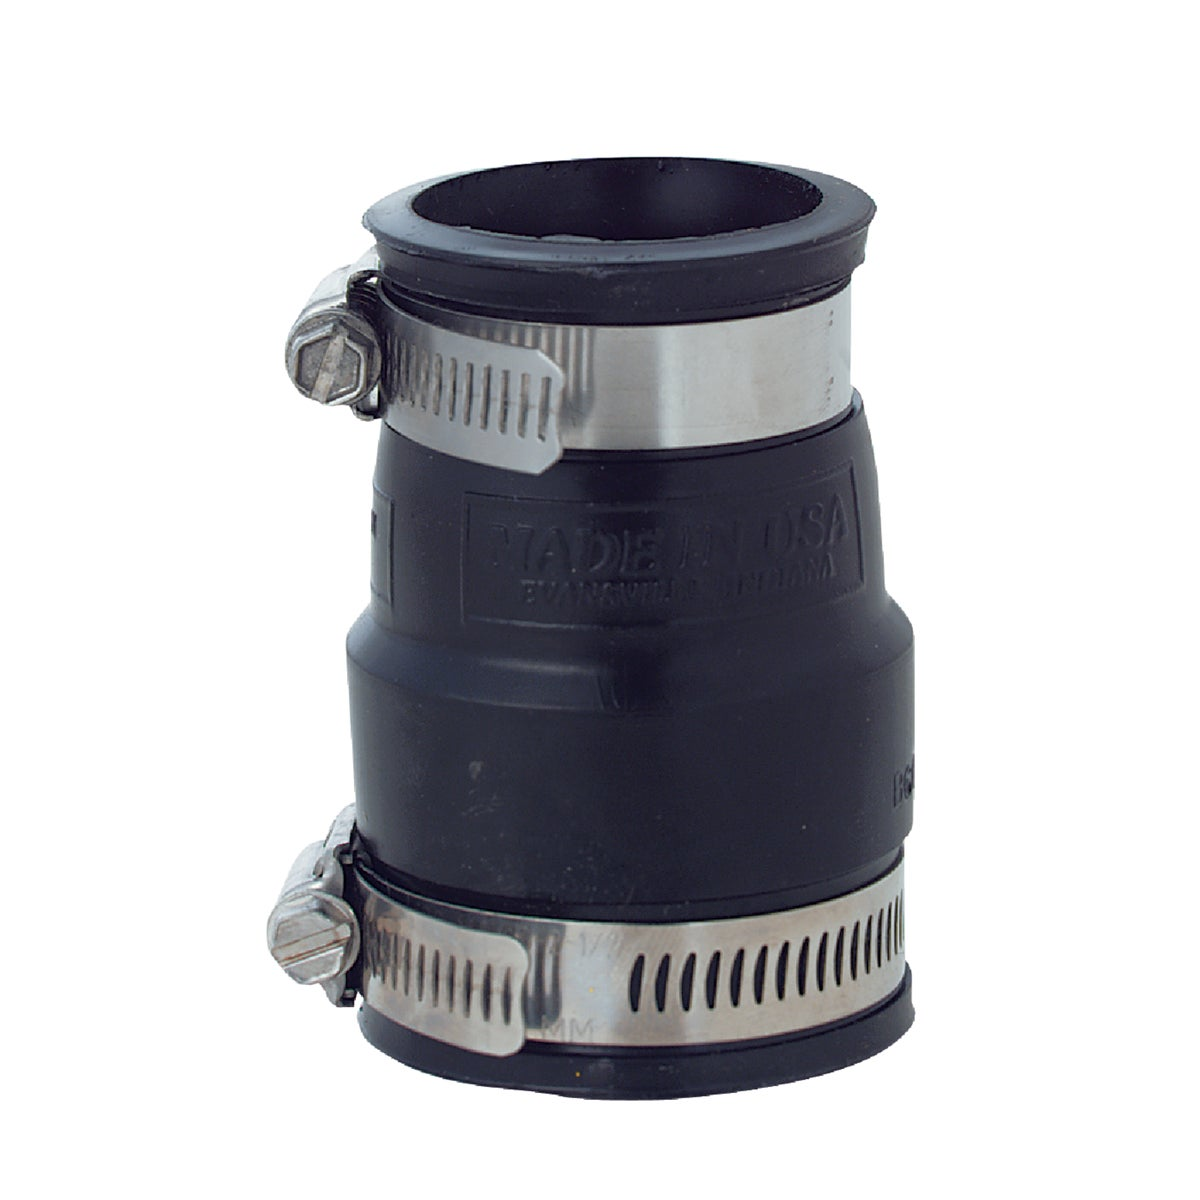 1-1/2X1-1/4FLEX COUPLING - P1056-150/125 by Fernco Inc